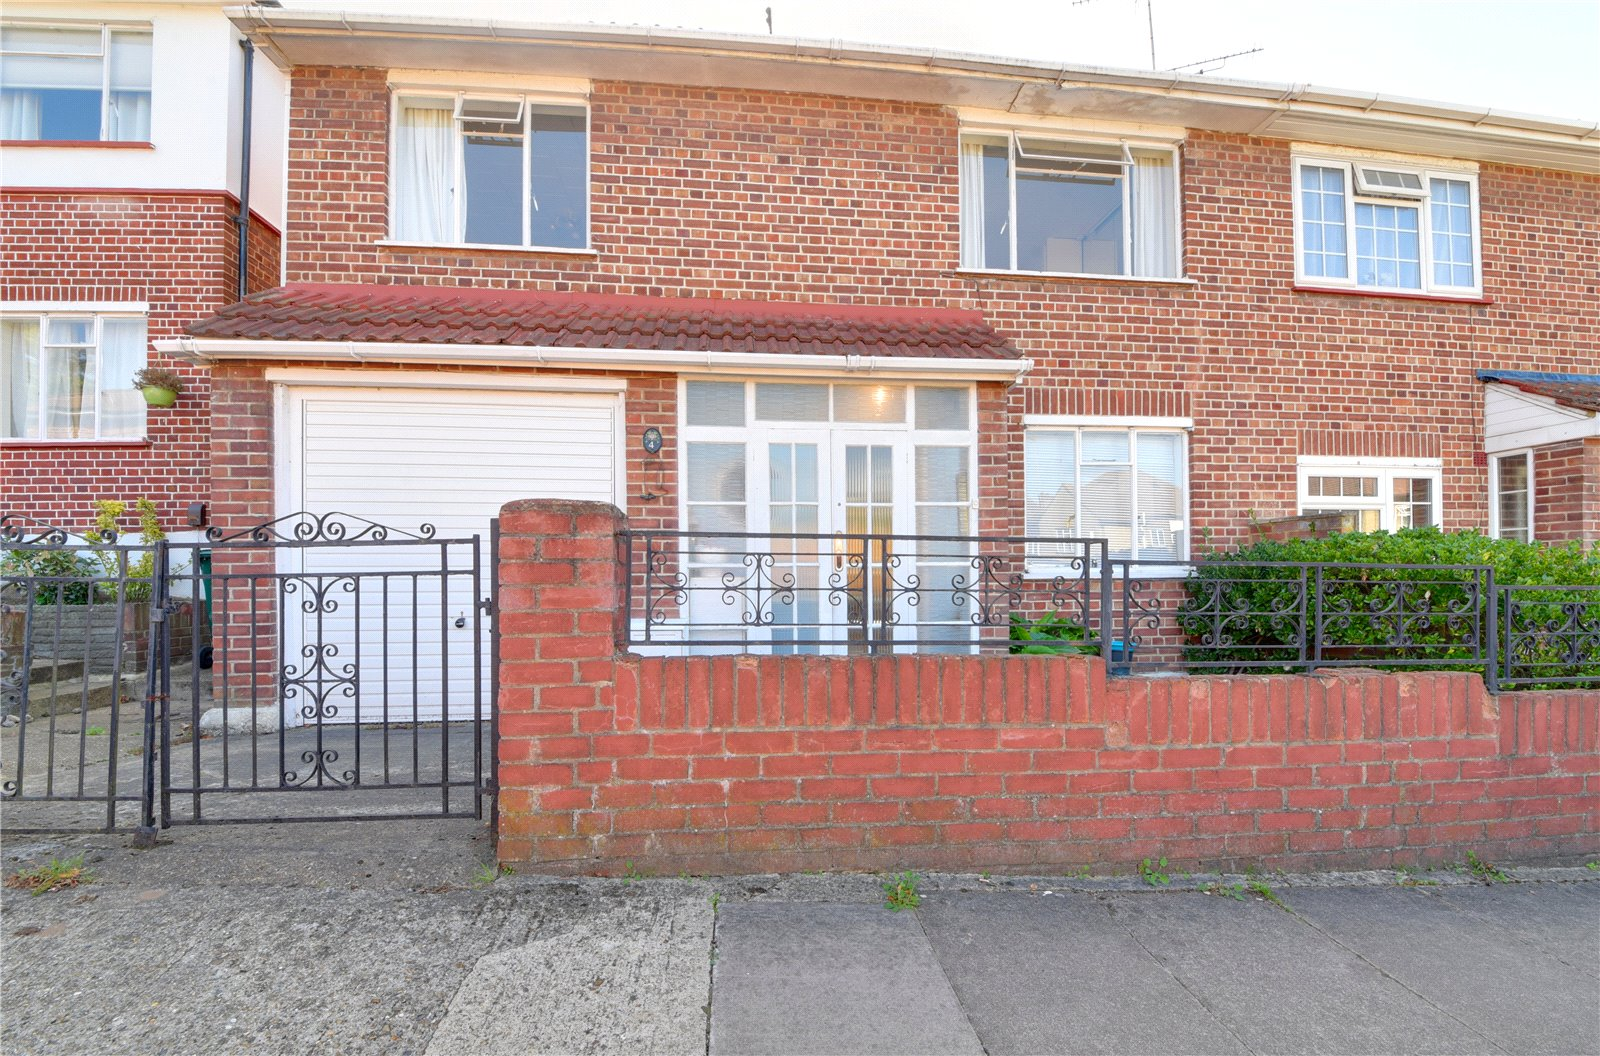 3 bed house for sale in West Finchley, N3 1PB 0